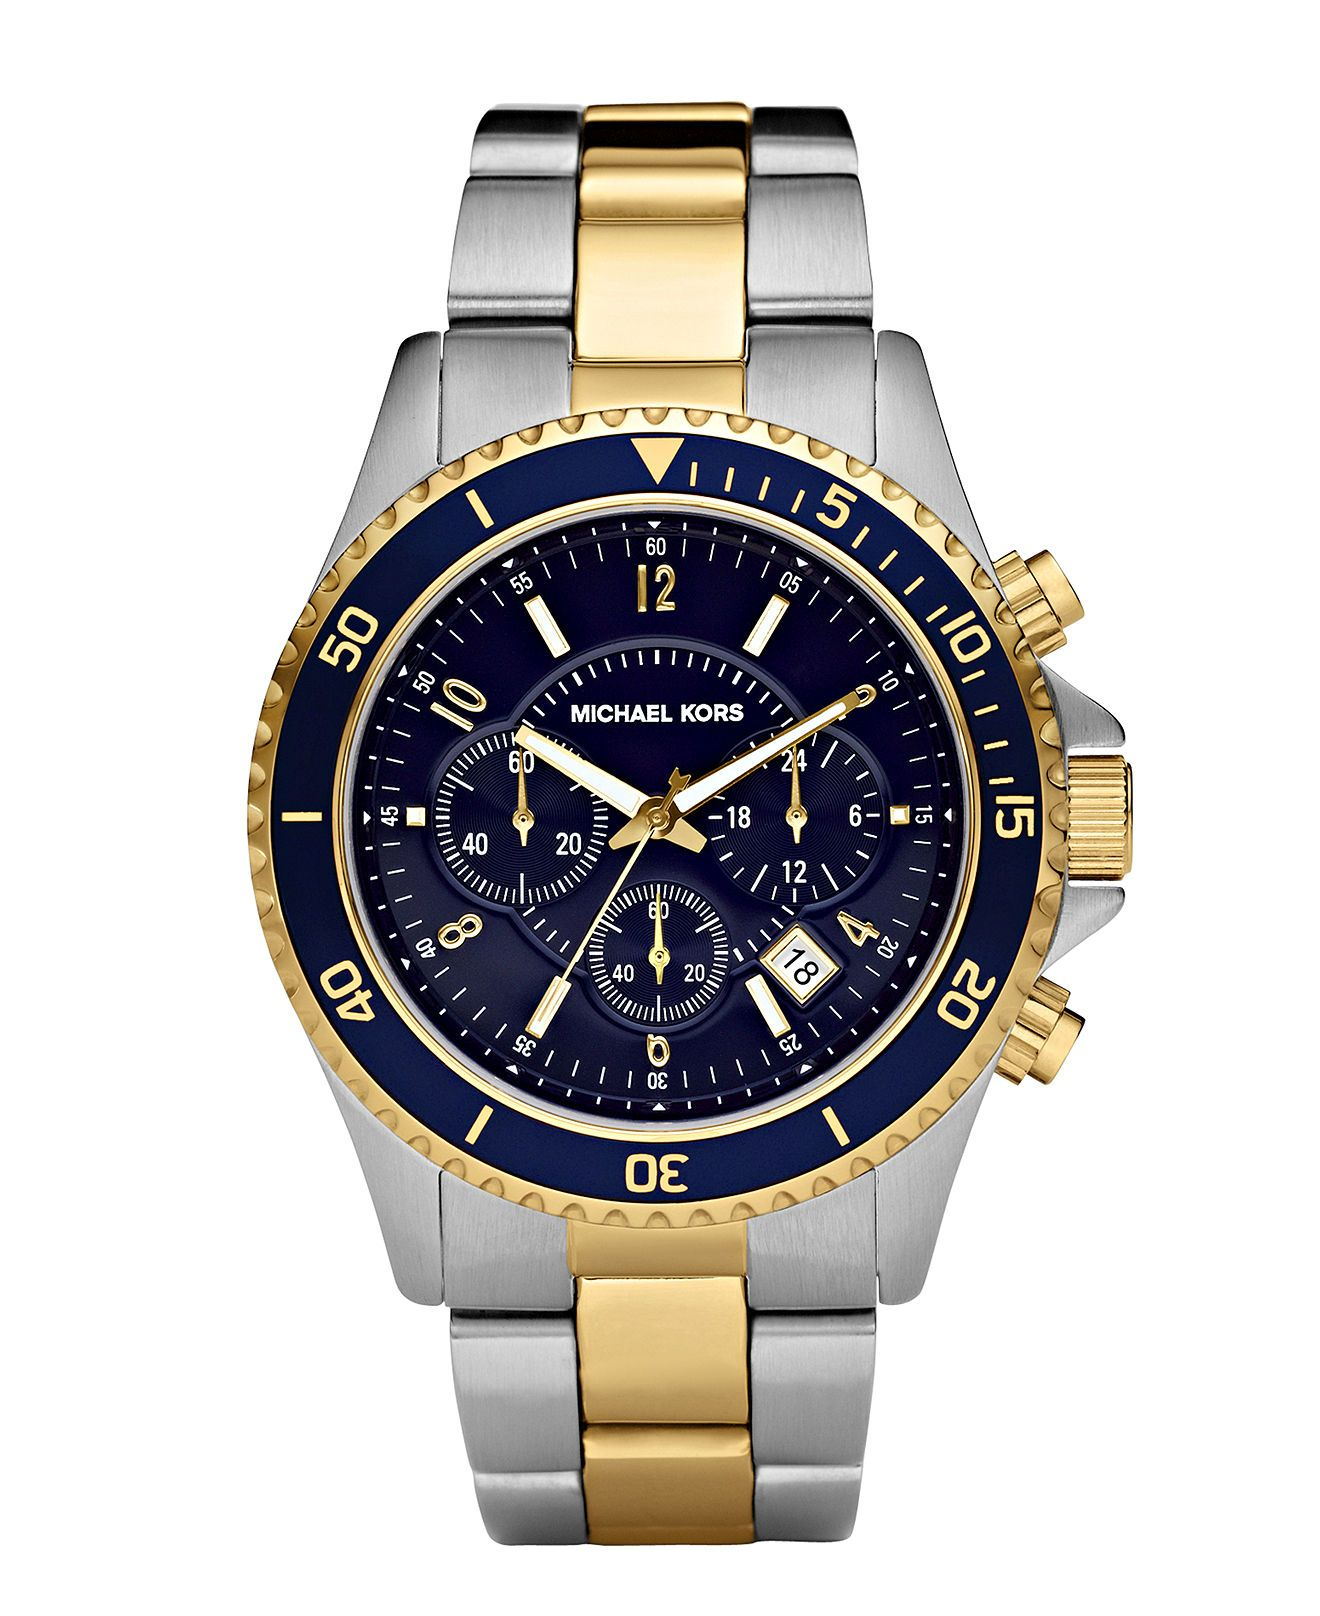 45100e006 Michael Kors Men's Chronograph Madison Two Tone Stainless Steel Bracelet  Watch 45mm MK8175 & Reviews - Watches - Jewelry & Watches - Macy's